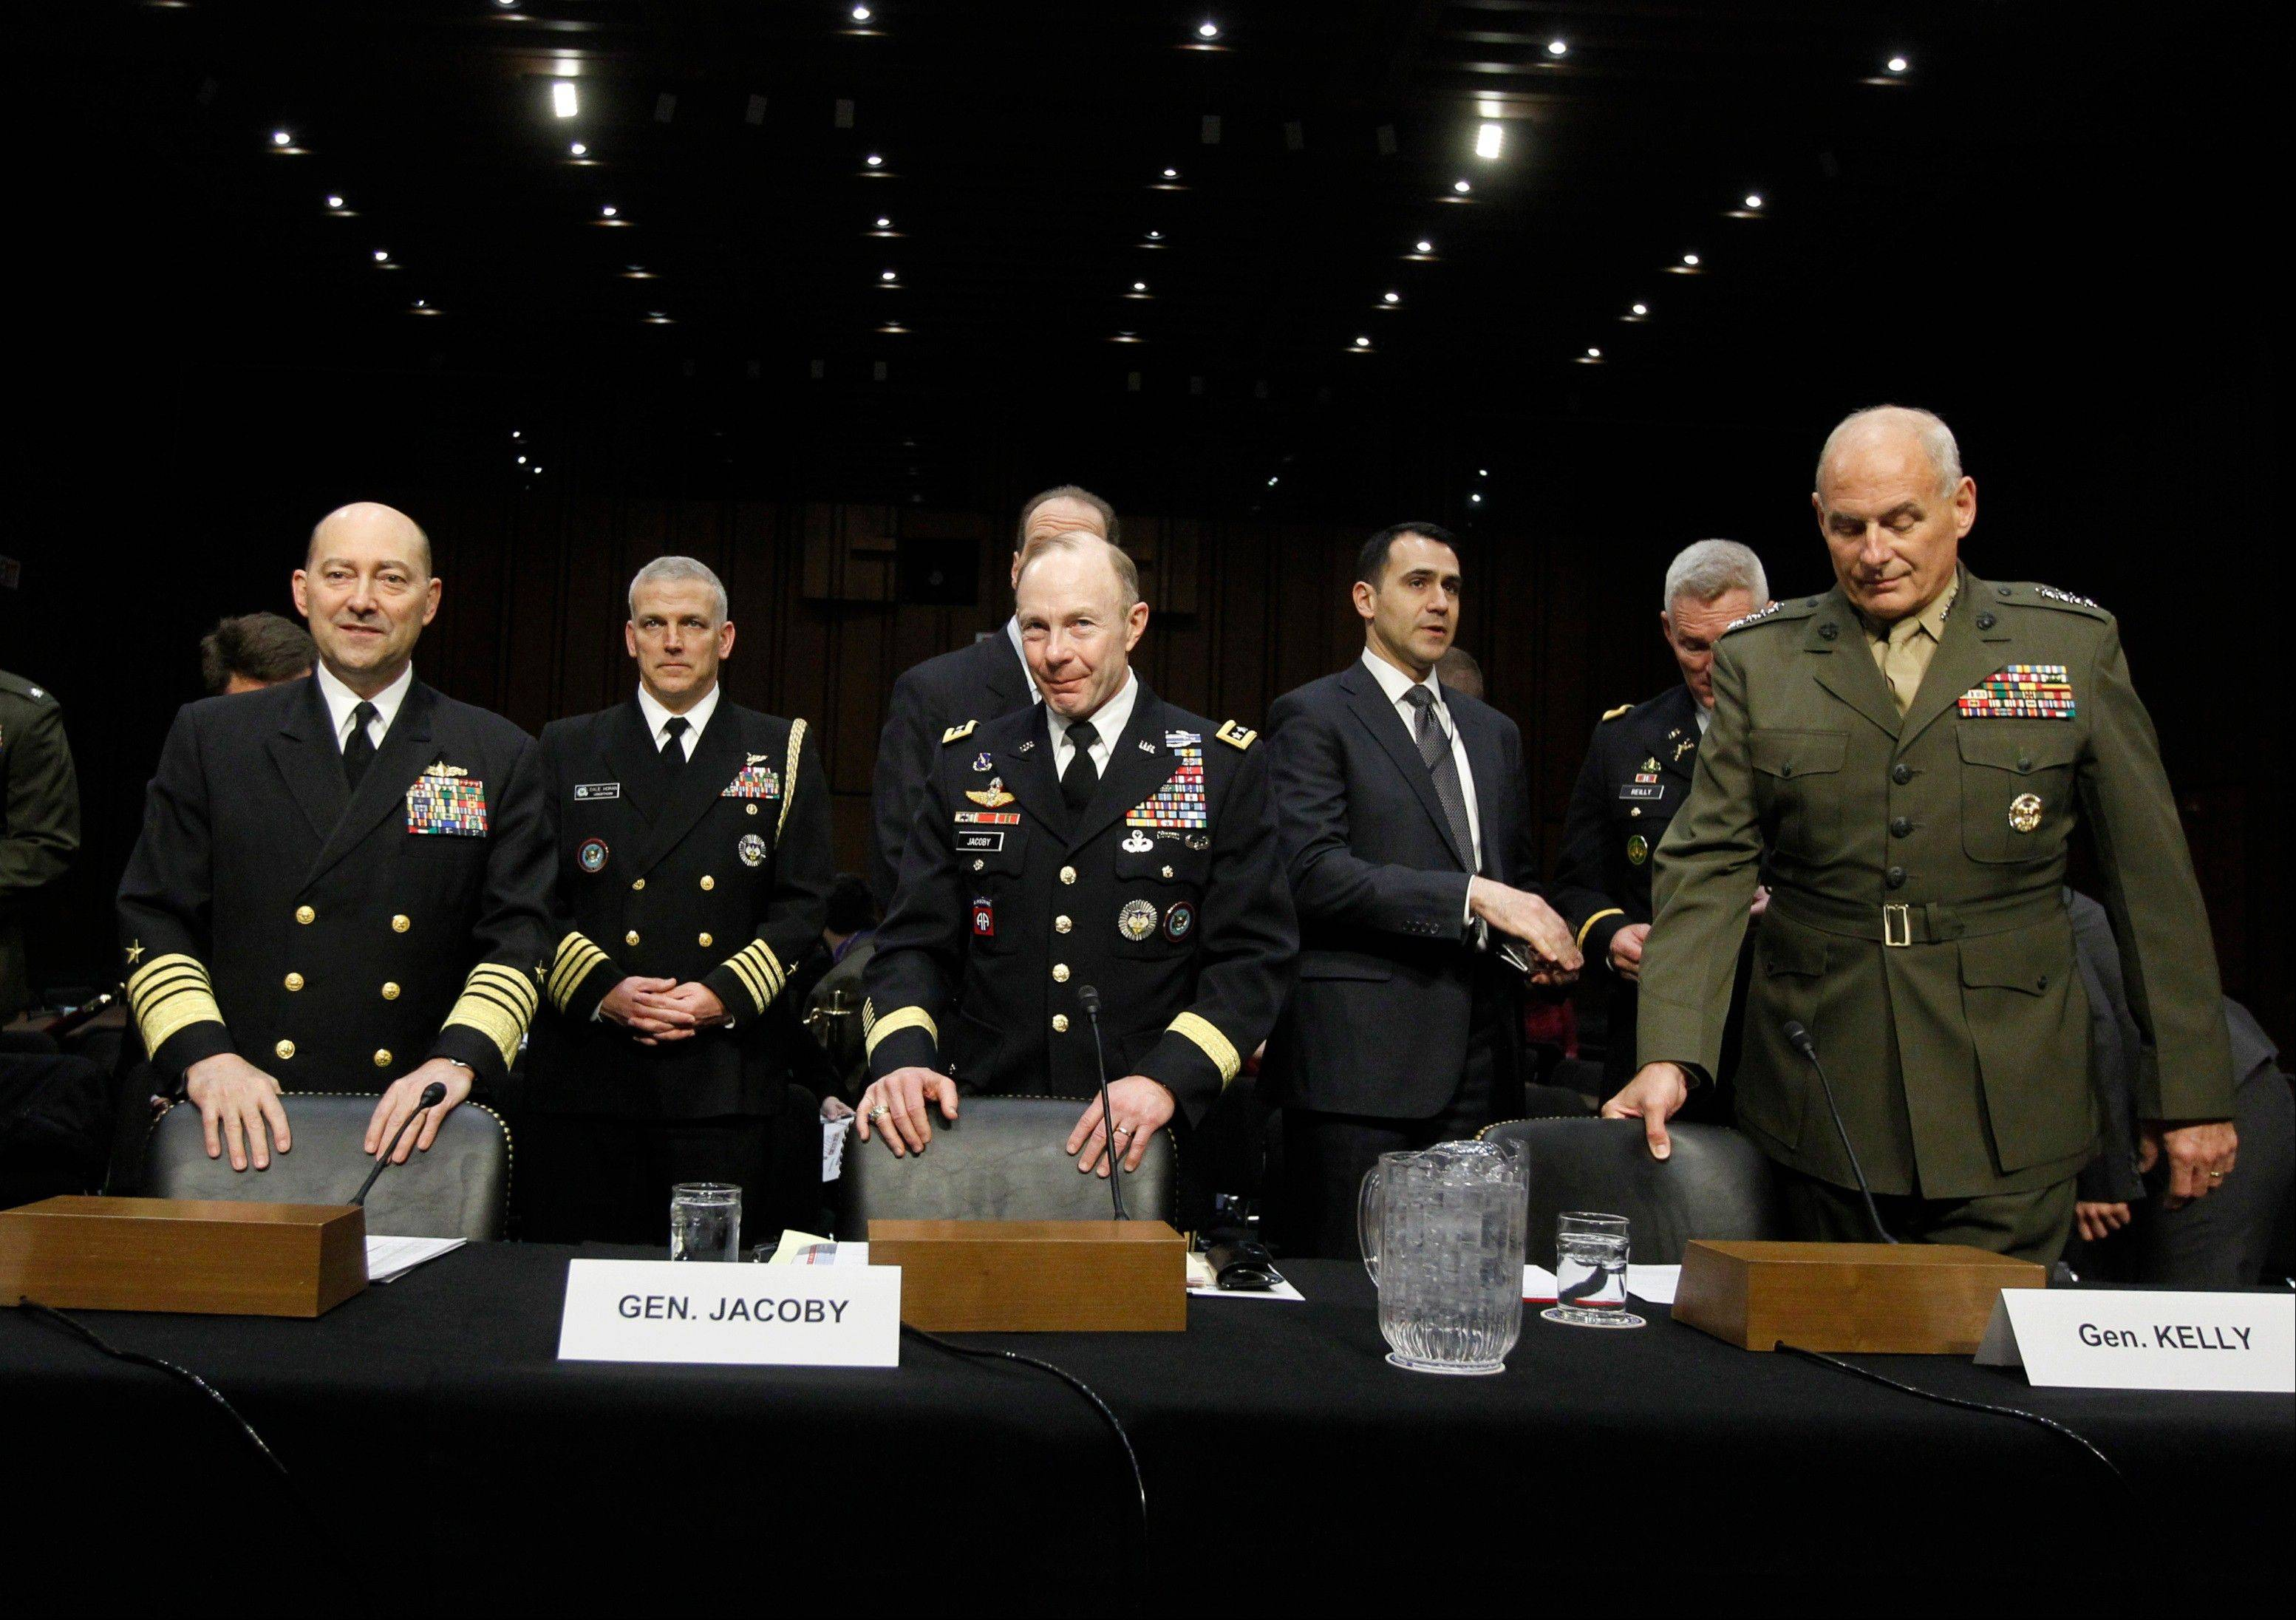 Front row, from left, Adm. James G. Stavridis, U.S. Navy Commander, U.S. European Command and Supreme Allied Commander, Europe; Gen. Charles H. Jacoby, Jr., Commander, U.S. Northern Command and Commander, North American Aerospace Defense Command; and Gen. John F. Kelly, USMC, Commander, U.S. Southern Command on Capitol Hill in Washington.